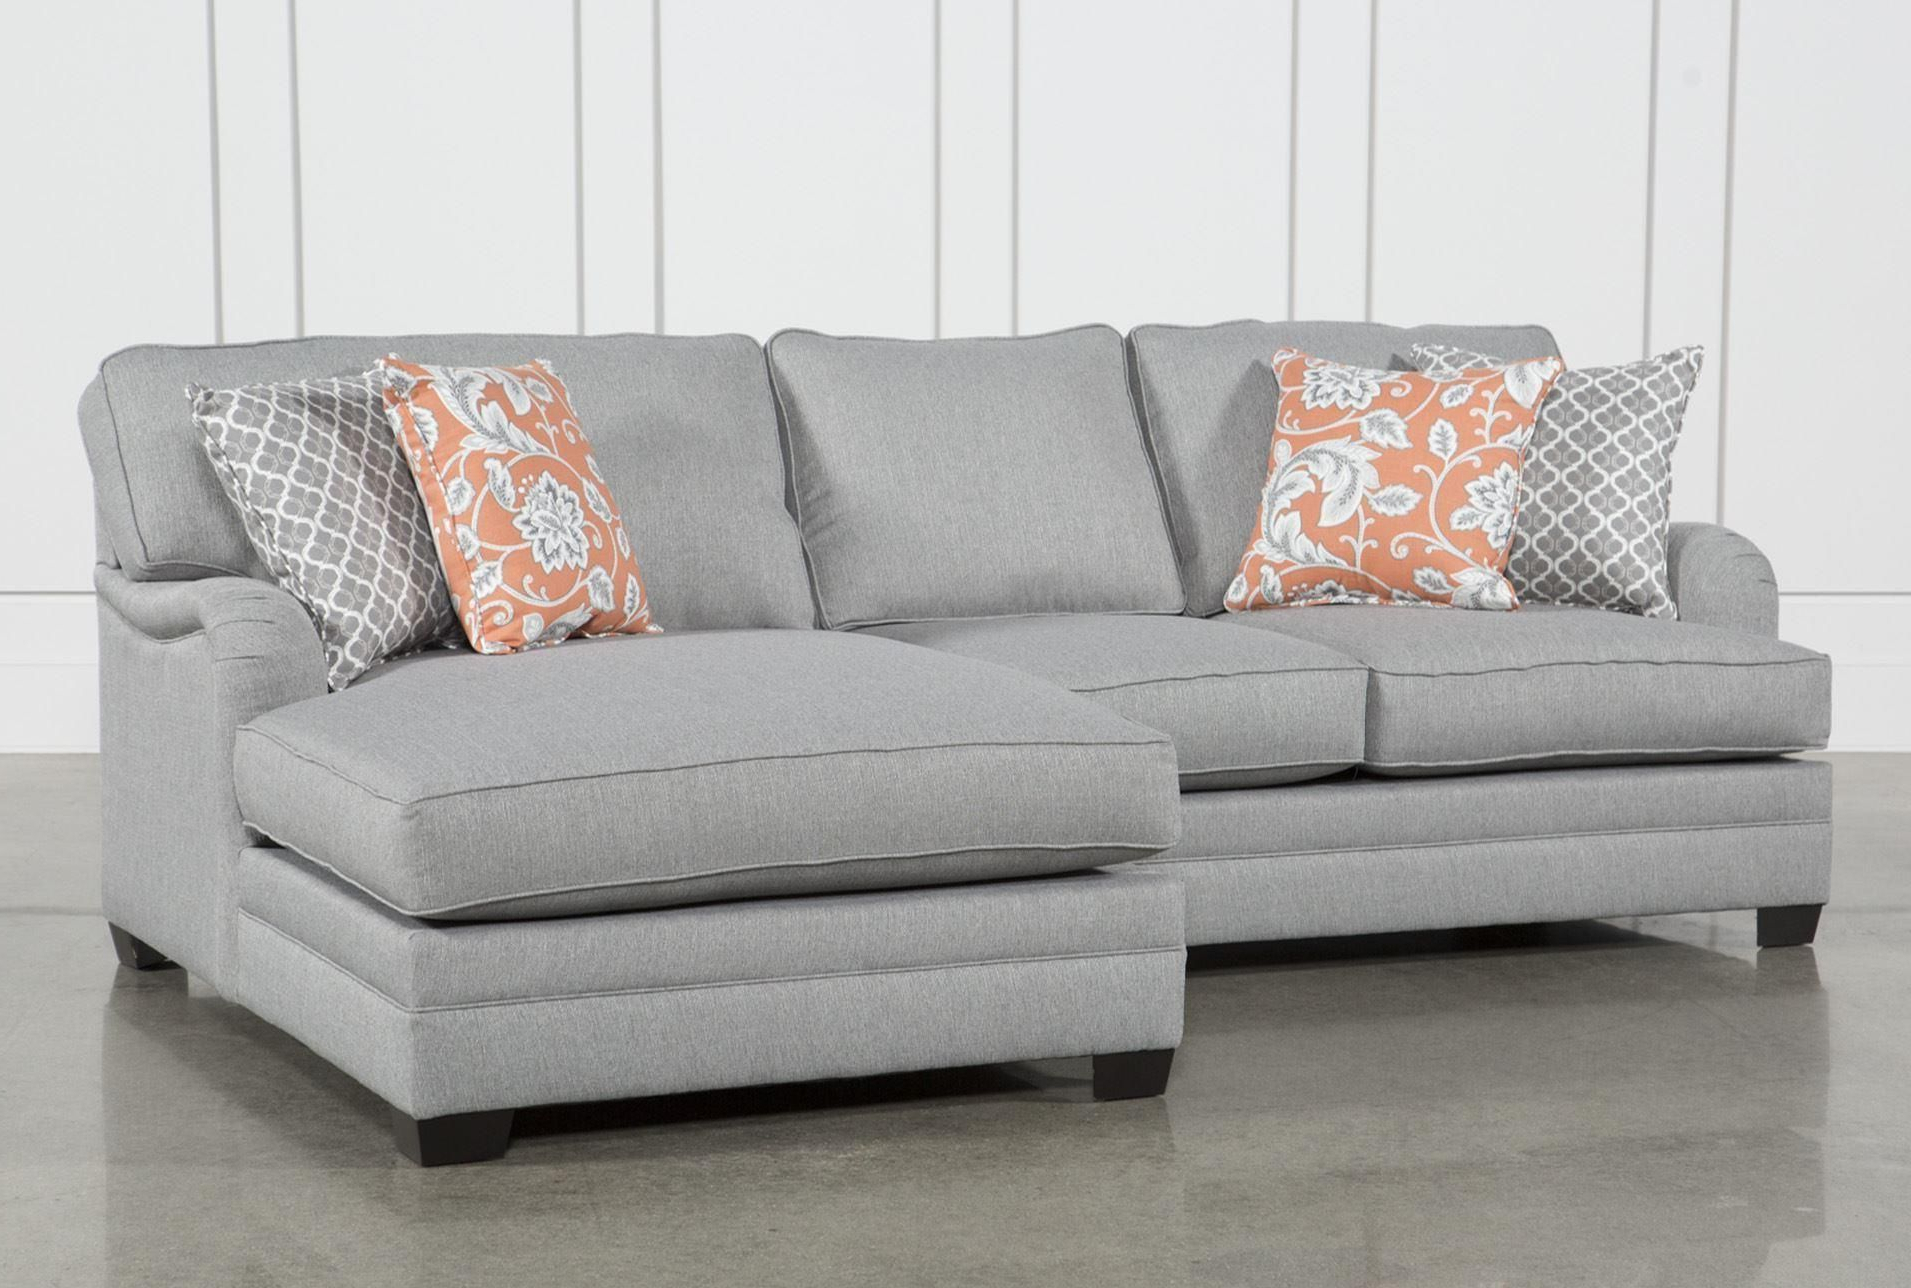 Preferred Mcculla Sofa Sectionals With Reversible Chaise For Marissa 2 Piece Sectional W/raf Chaise (View 2 of 20)